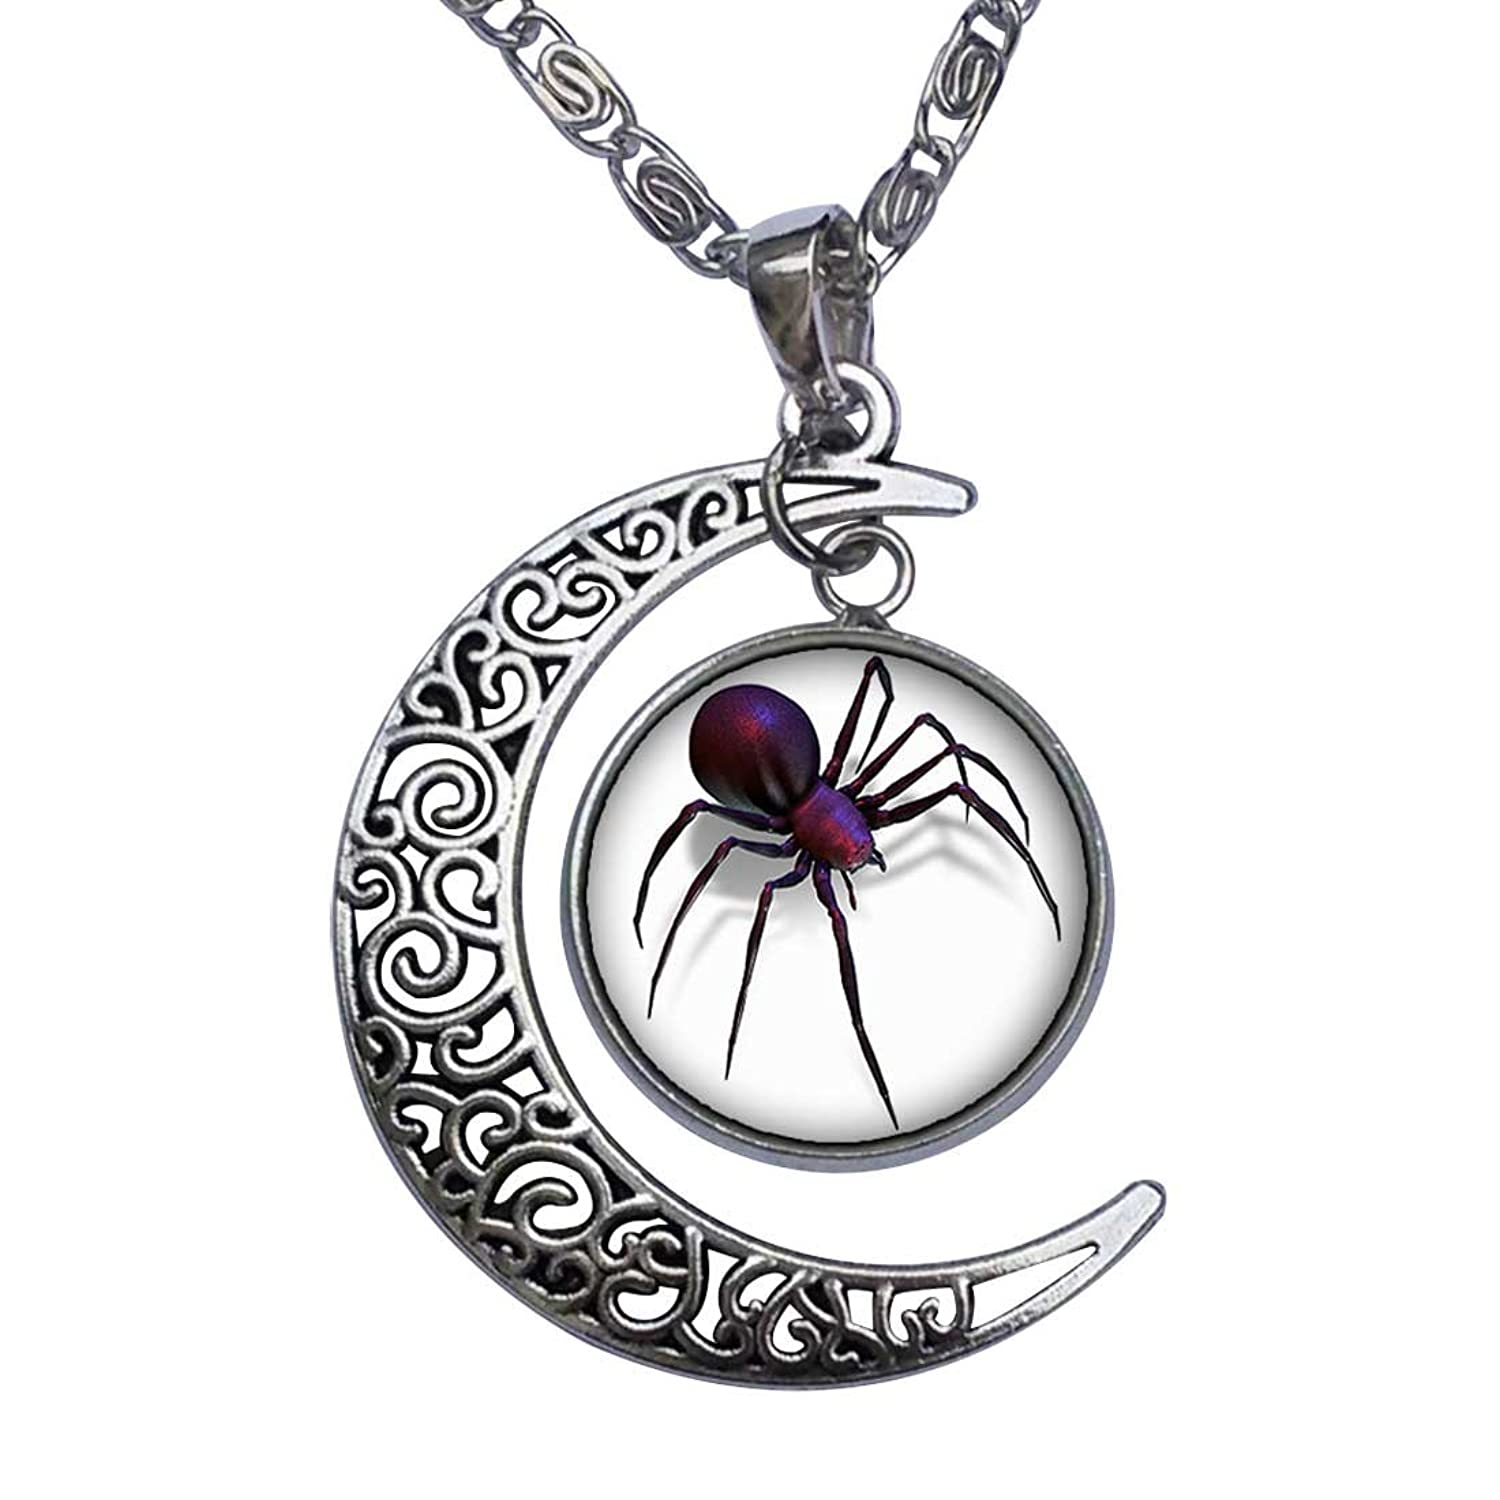 Spider jewelry symbol of power choice and growth black widow spider crescent moon pendant necklace aloadofball Image collections